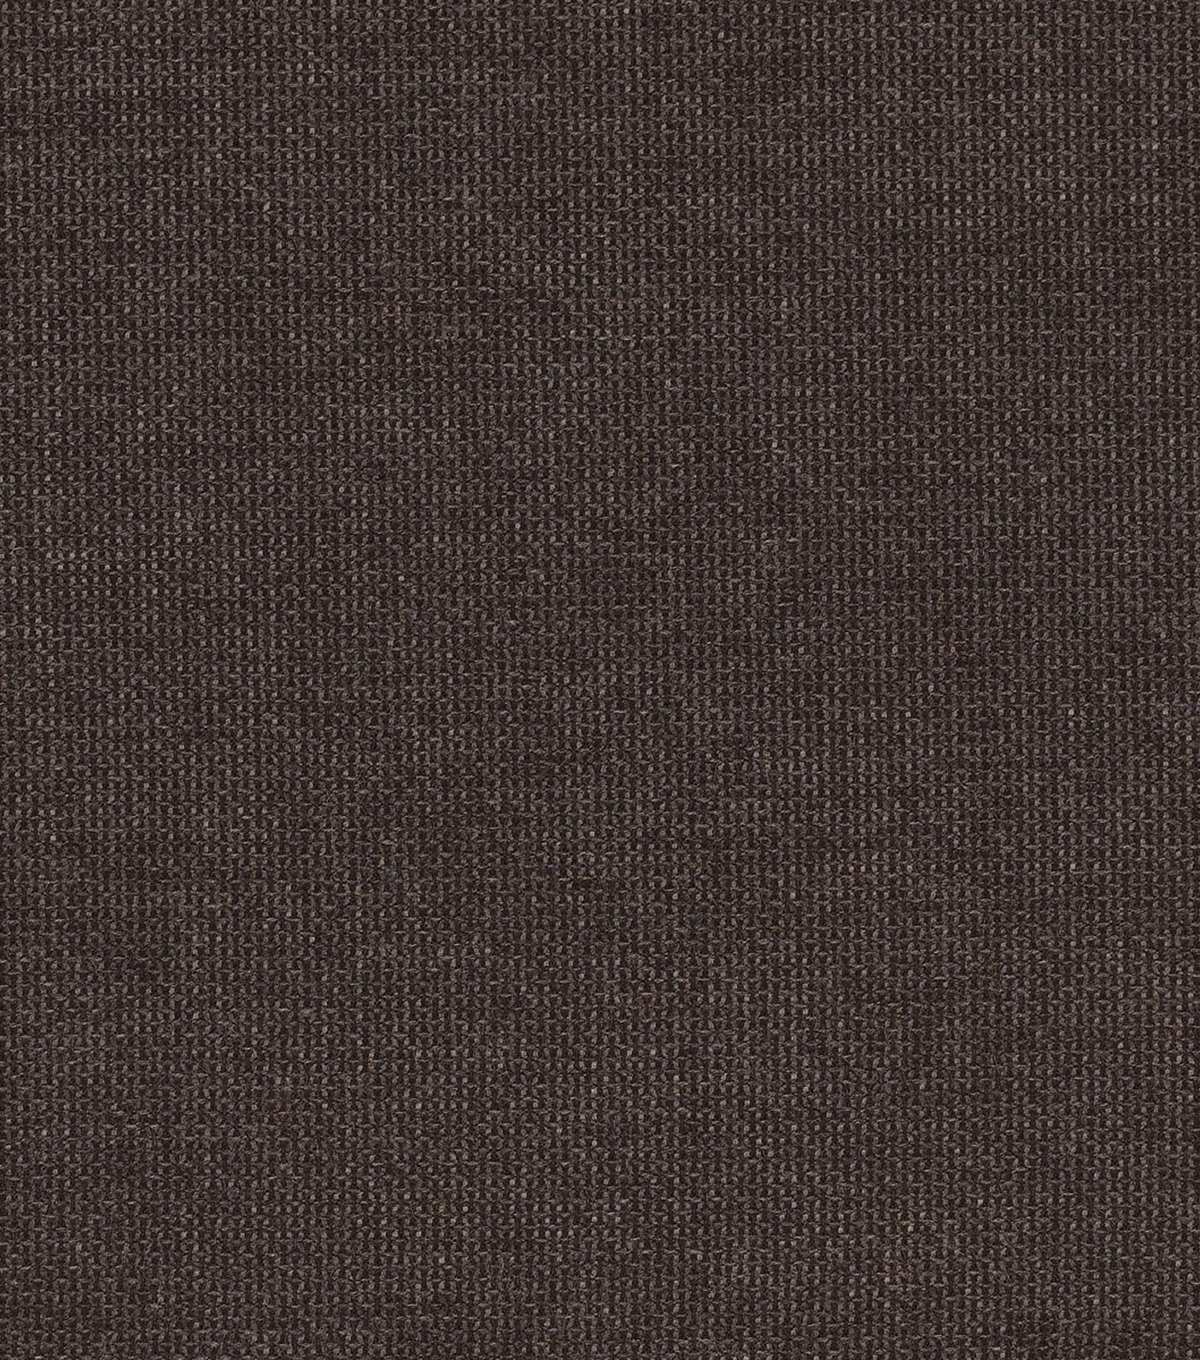 Sunbrella Outdoor Fabric 54\u0022-Shadow Charcoal